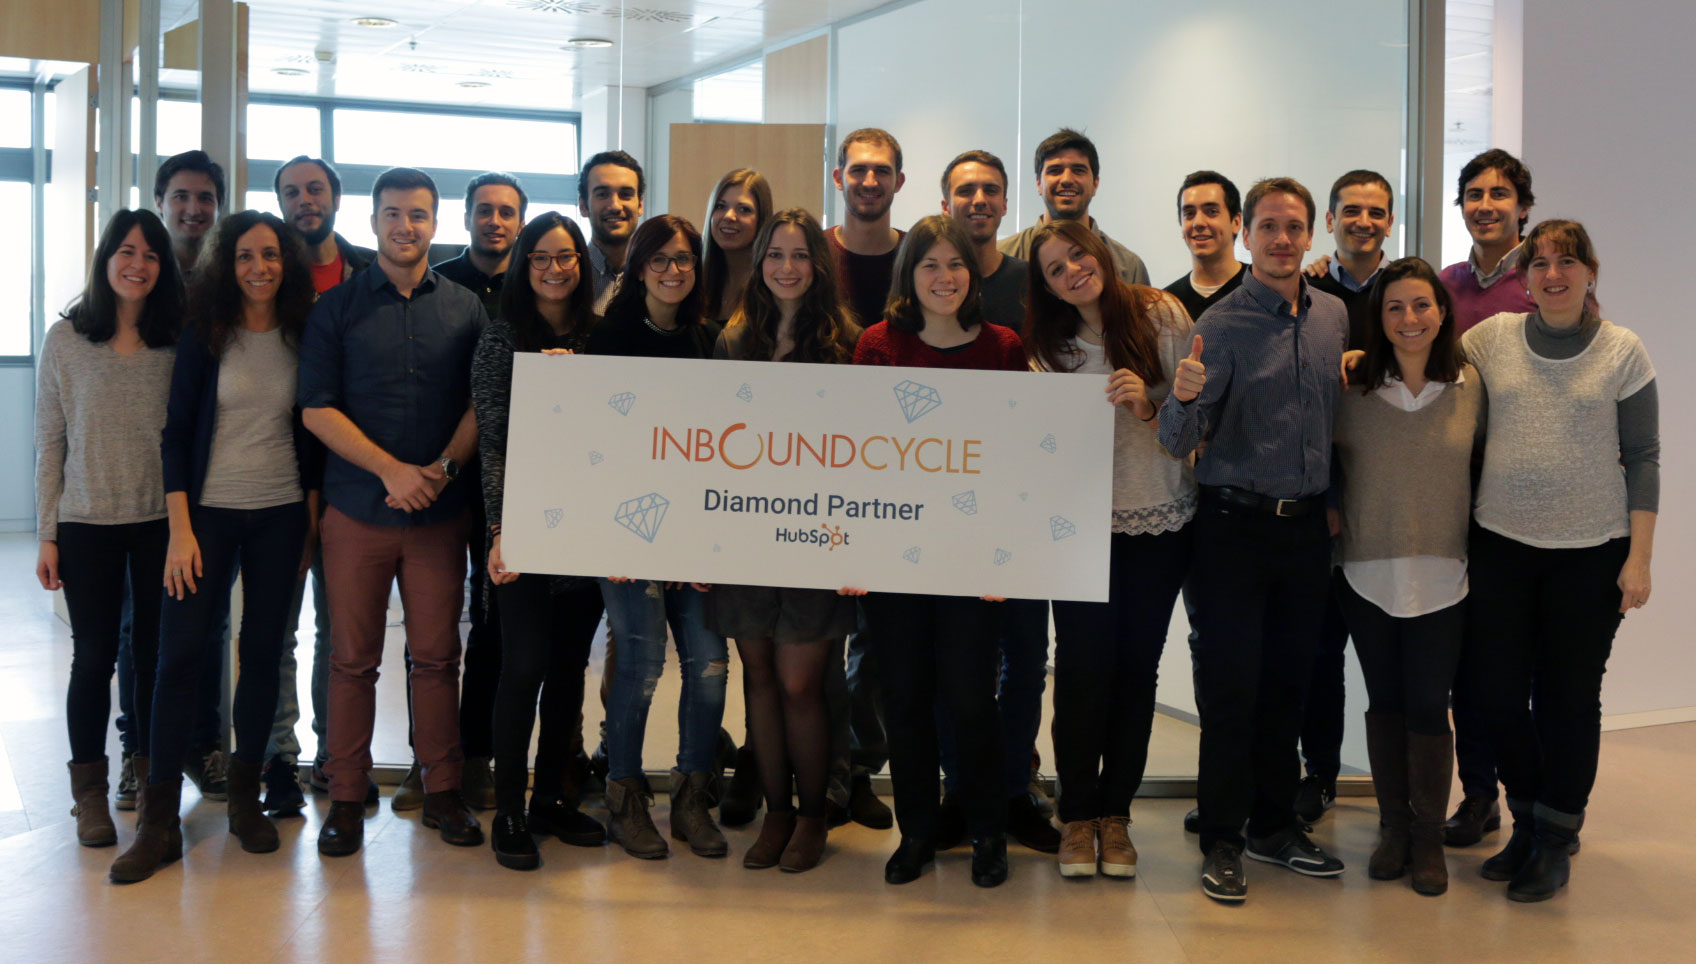 inboundcycle-diamond-partner